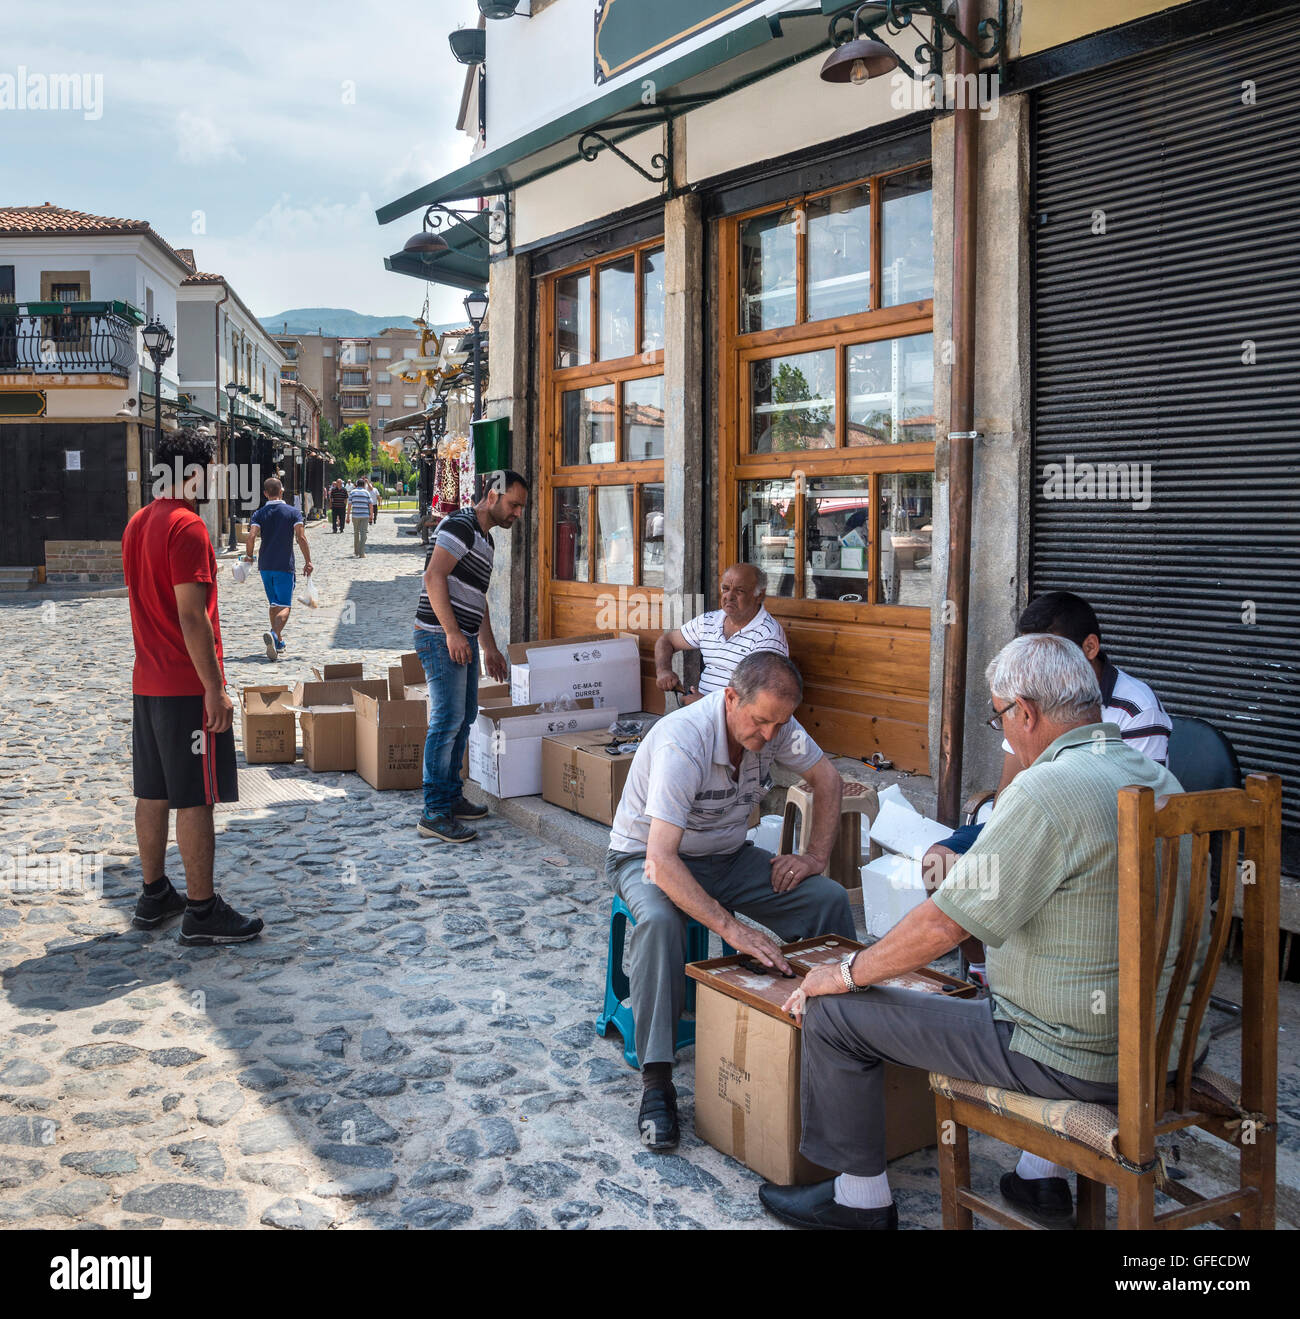 Playing backgammon in the bazaar district. Korca, South eastern Albania. - Stock Image